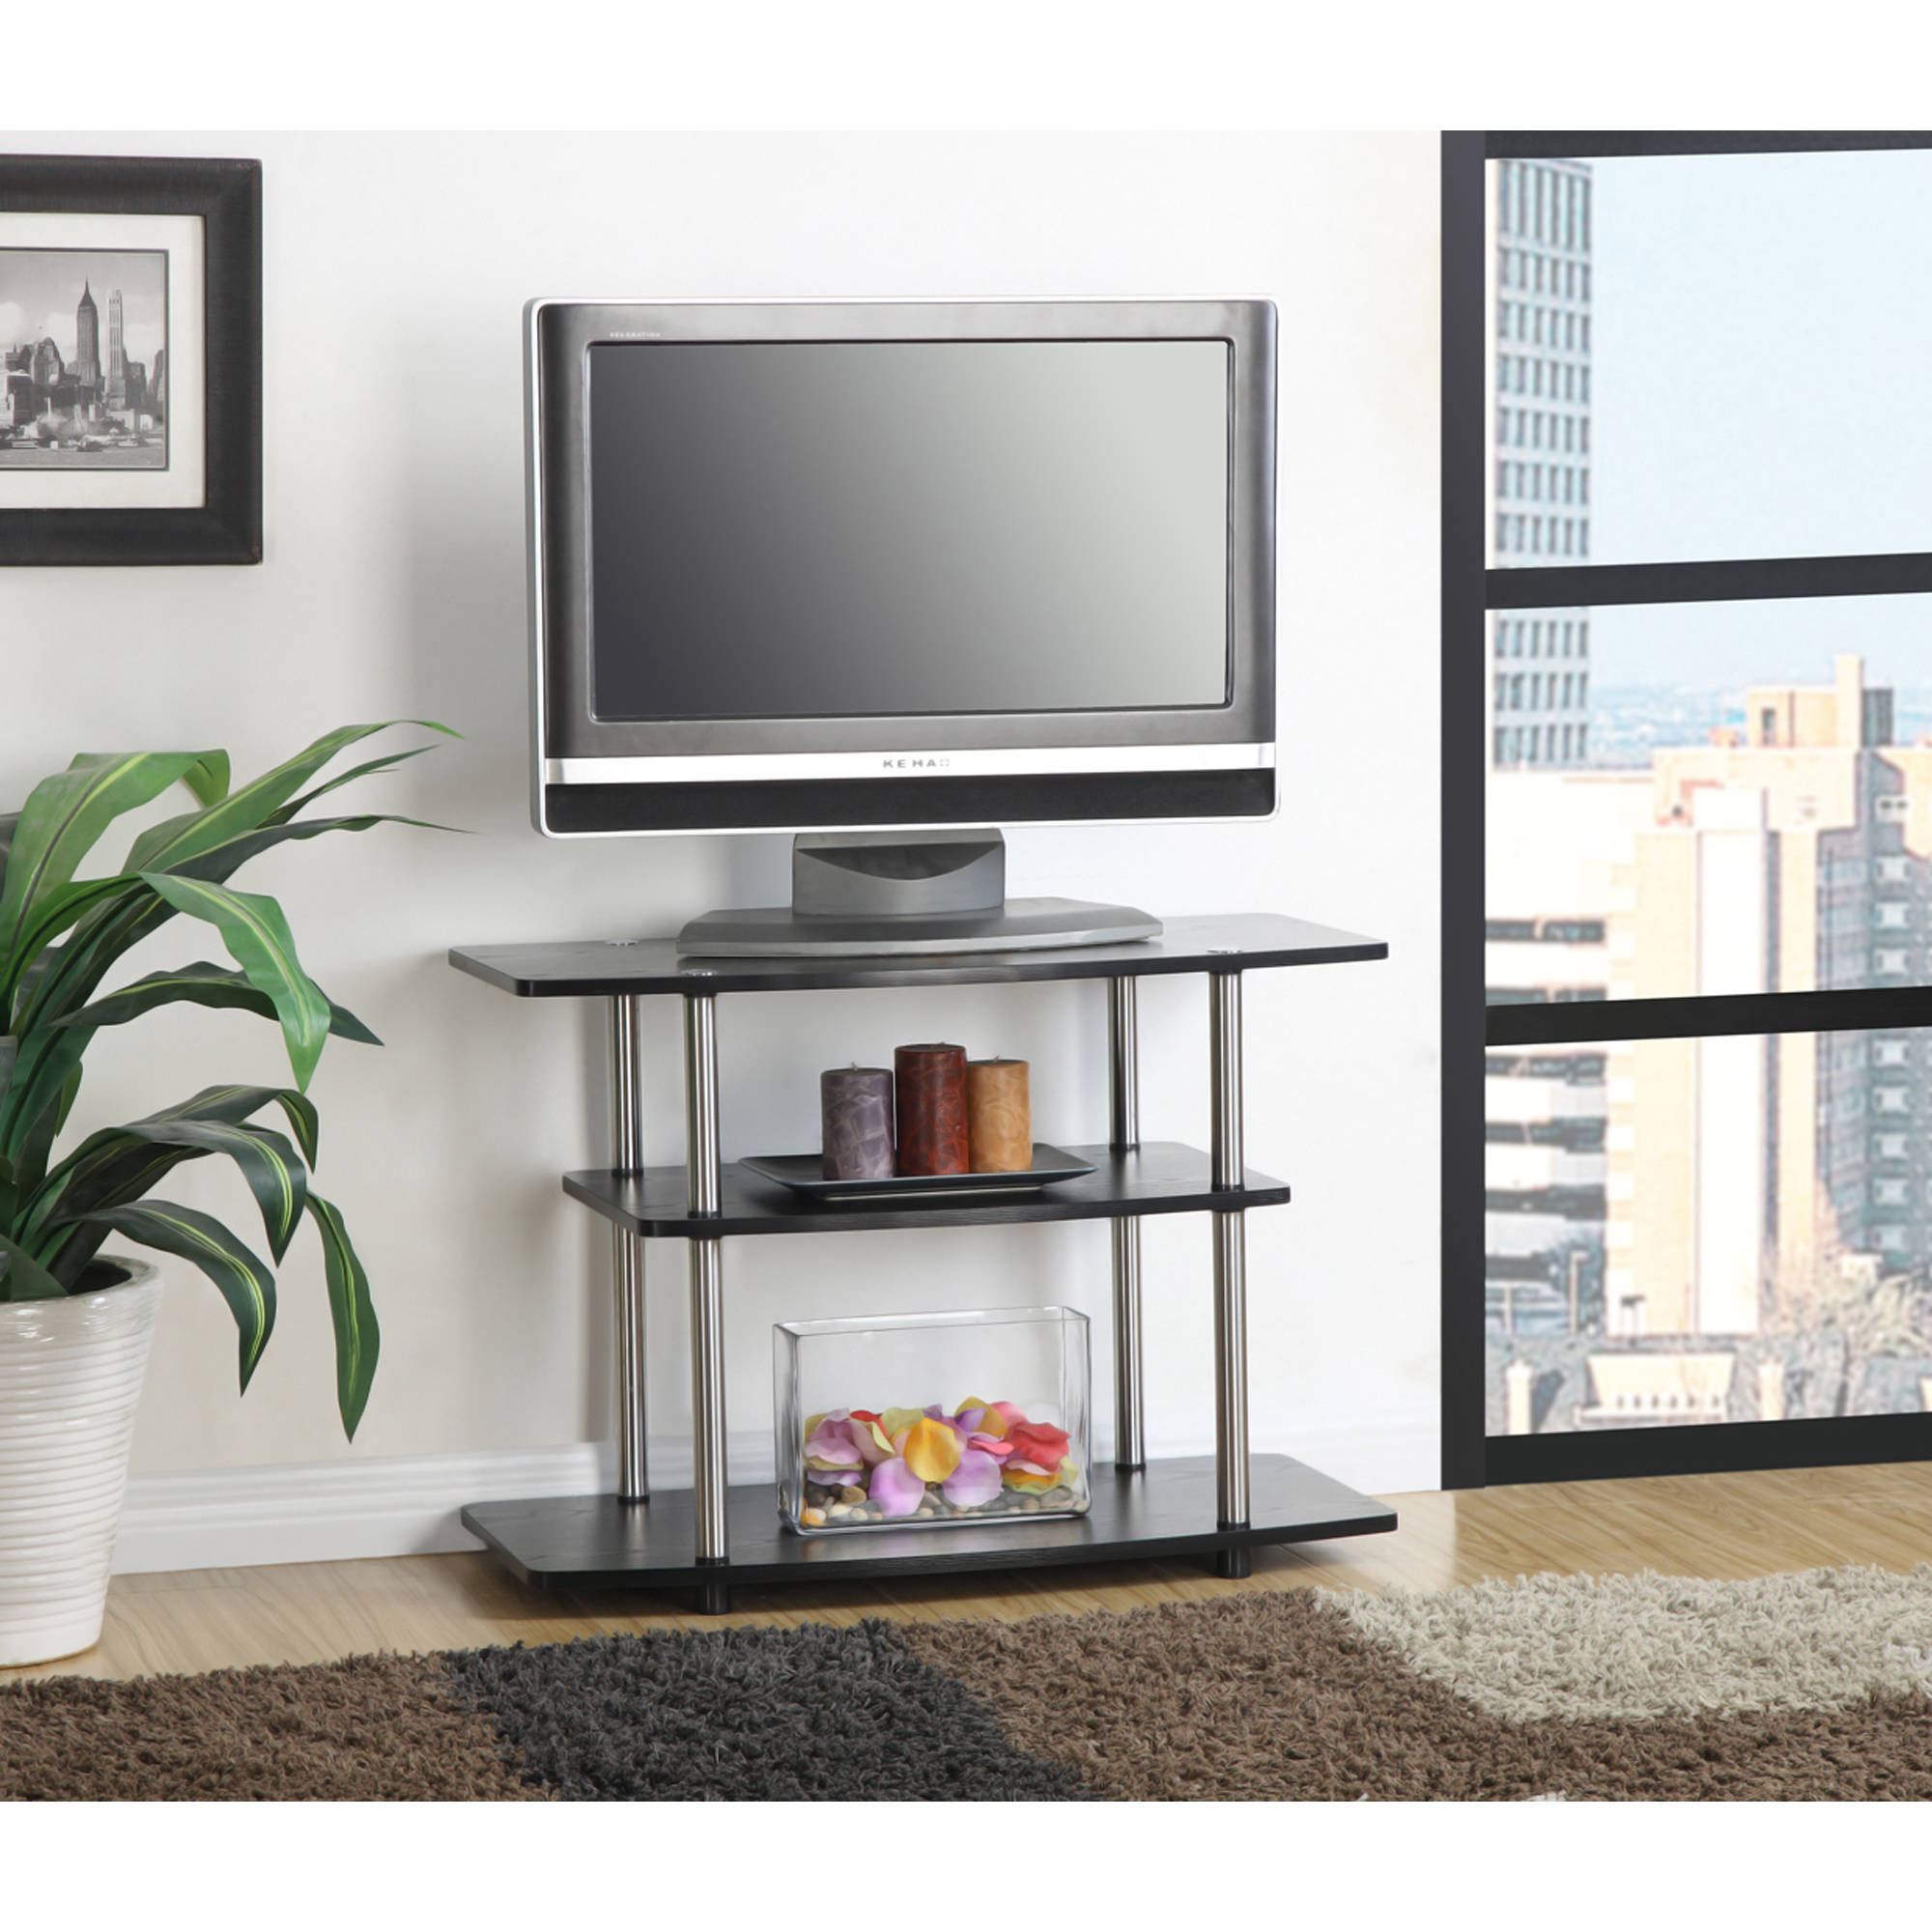 "Designs 2 Go Three-Tier TV Stand, for TVs up to 32"" by Convenience Concepts, Multiple Colors"